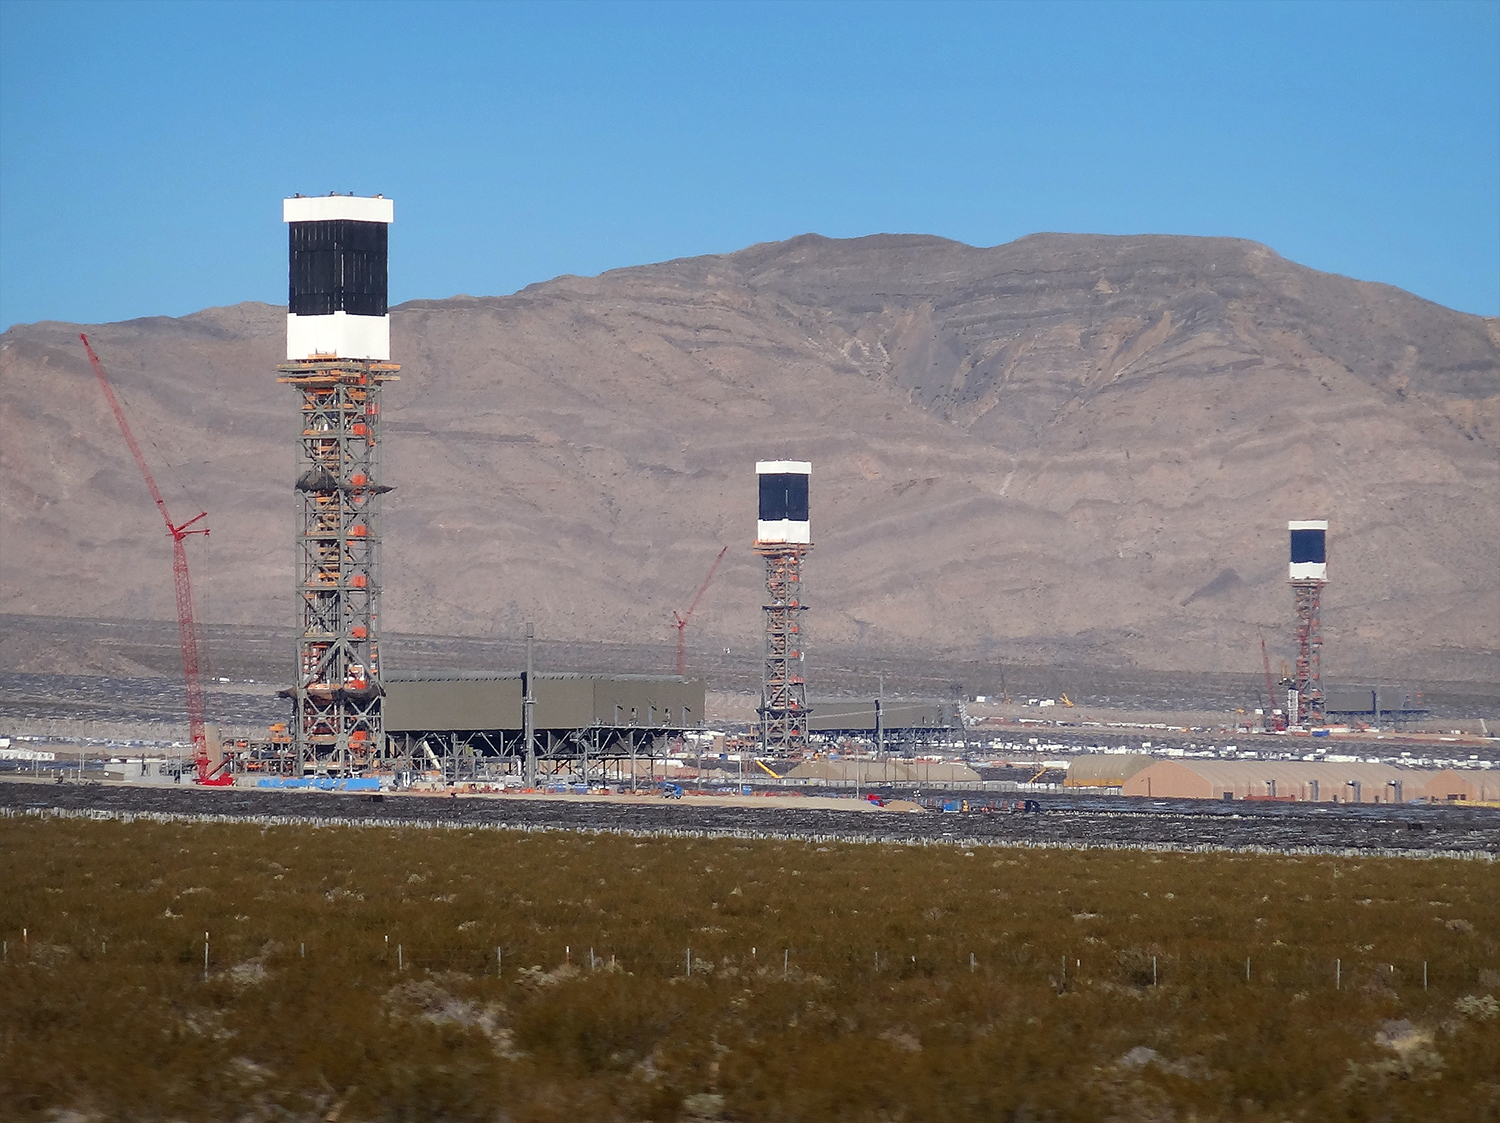 Ivanpah_Solar_Power_Facility_%282%29.jpg